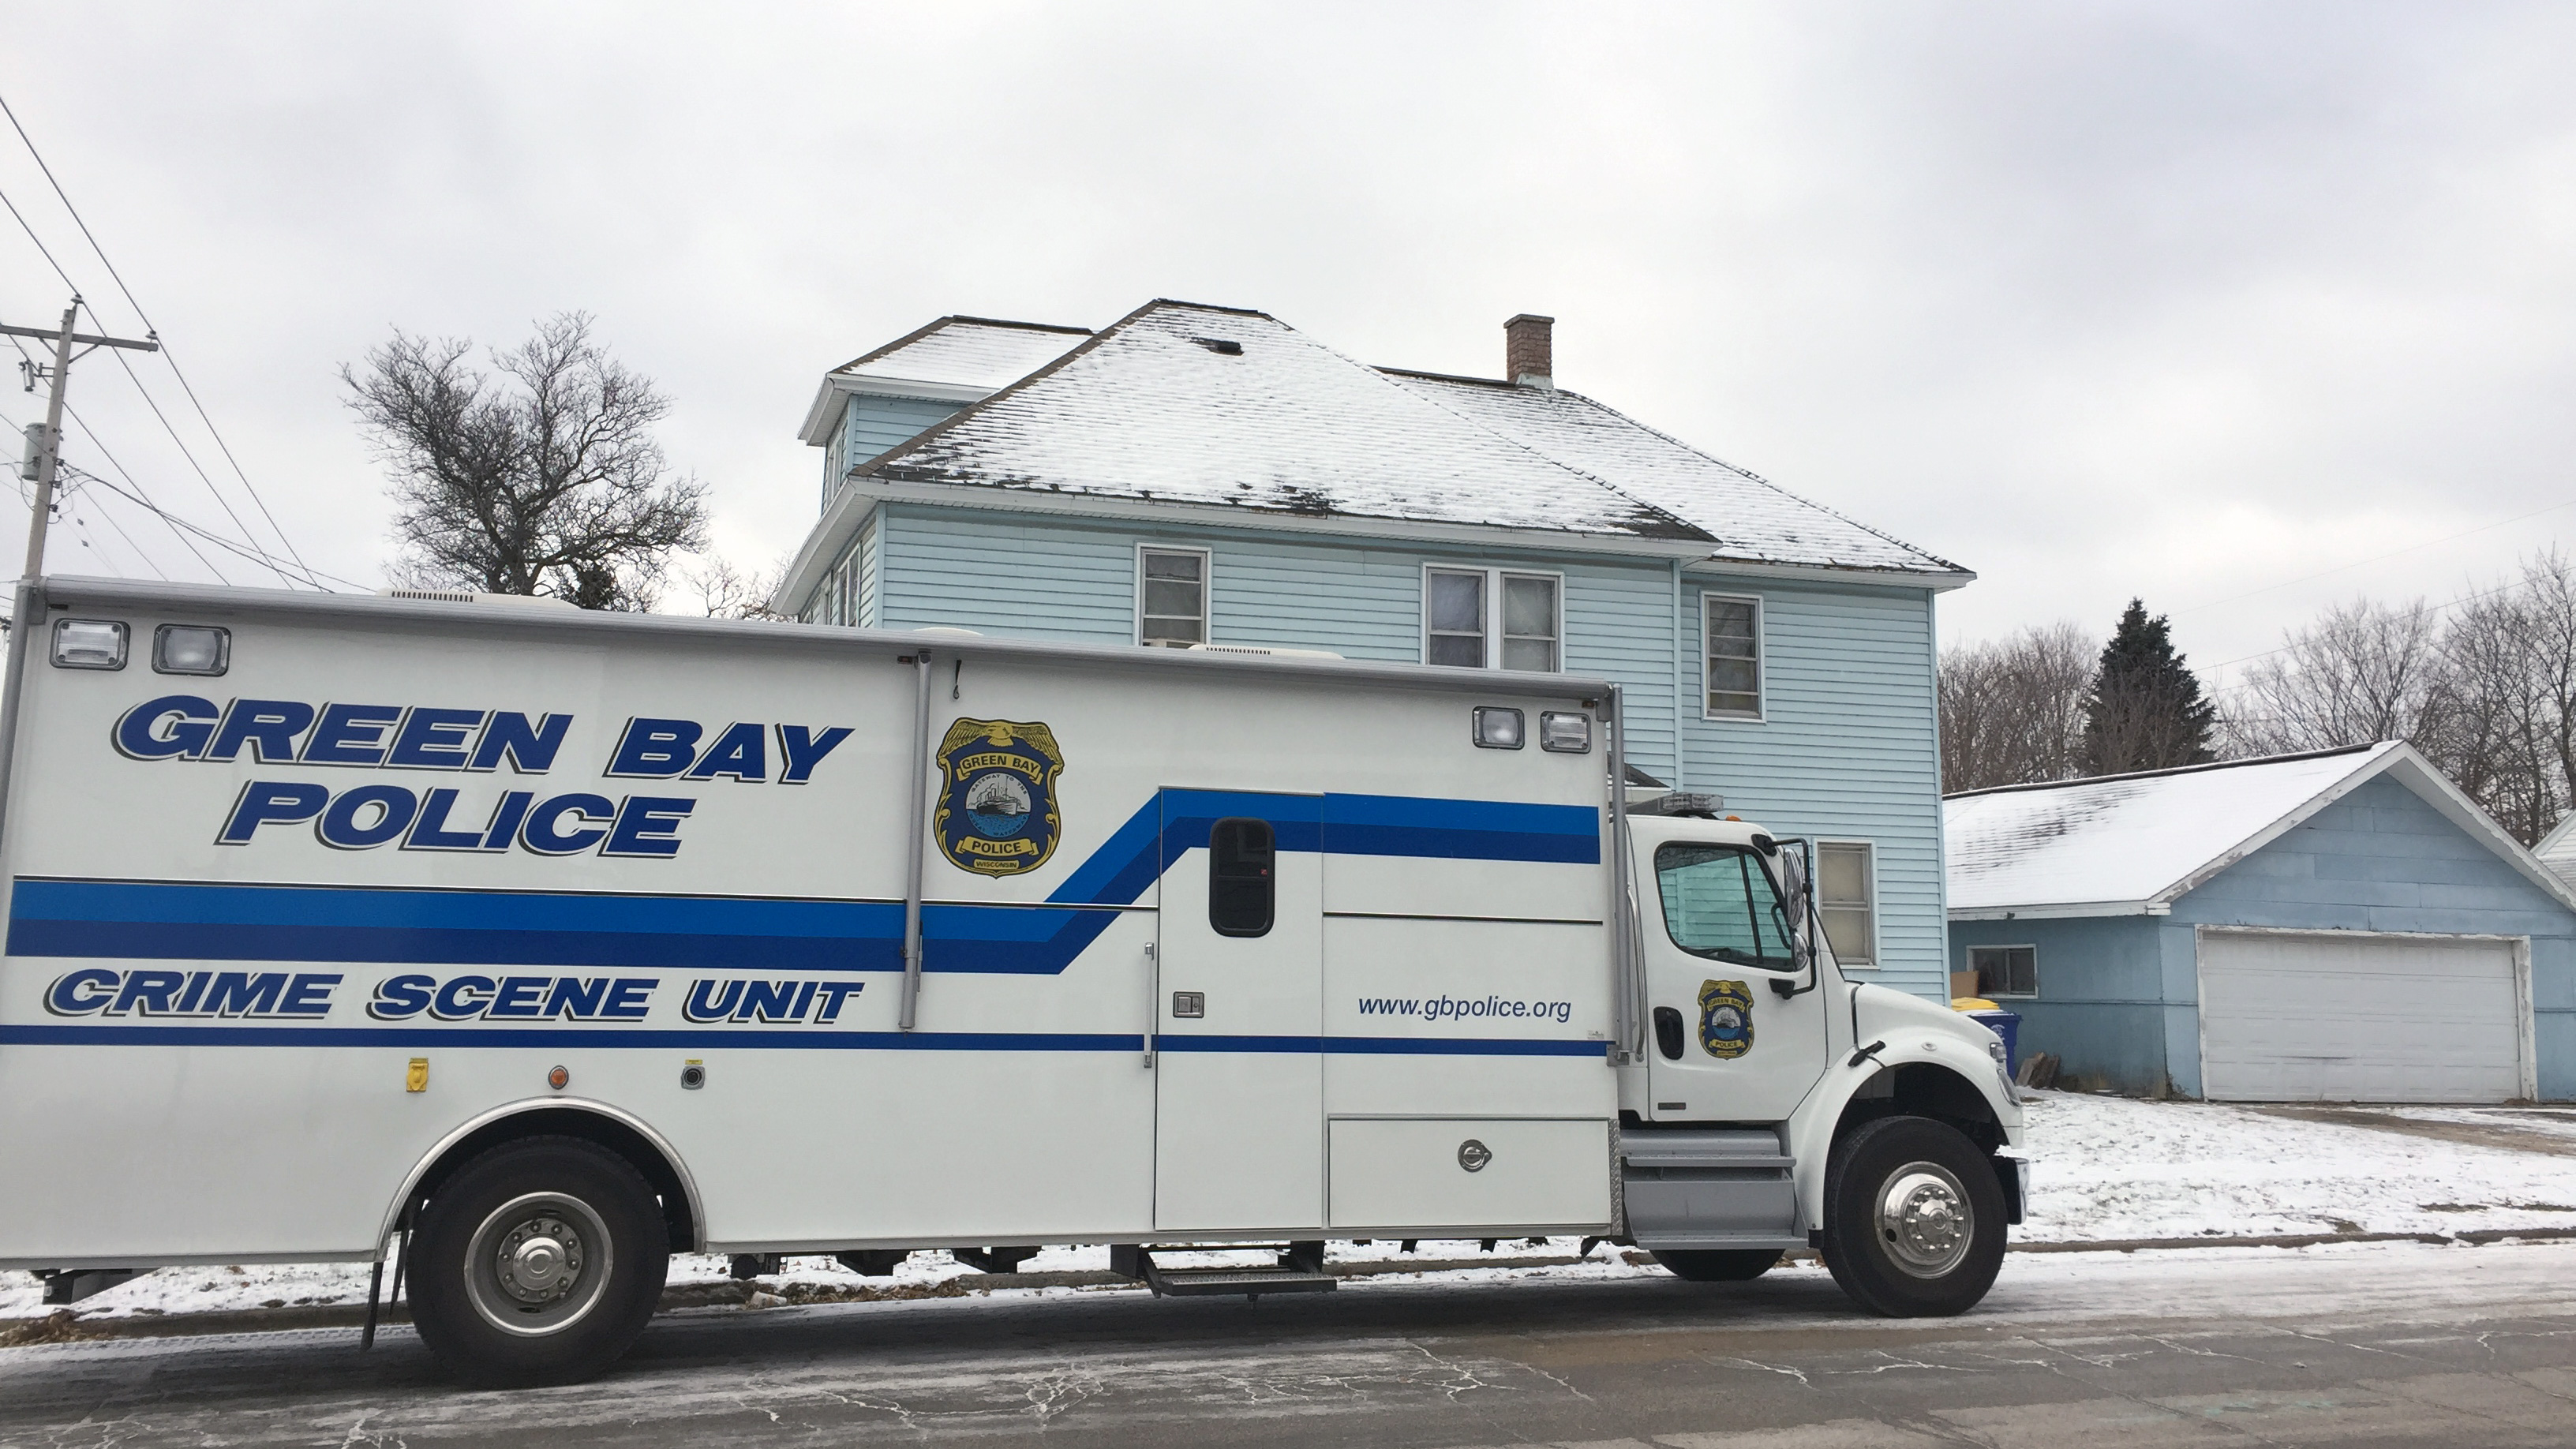 Green Bay police investigate the death of a 26-year-old man in the 1000 block of Reber St. Dec. 12, 2017. (WLUK/David Duchan)